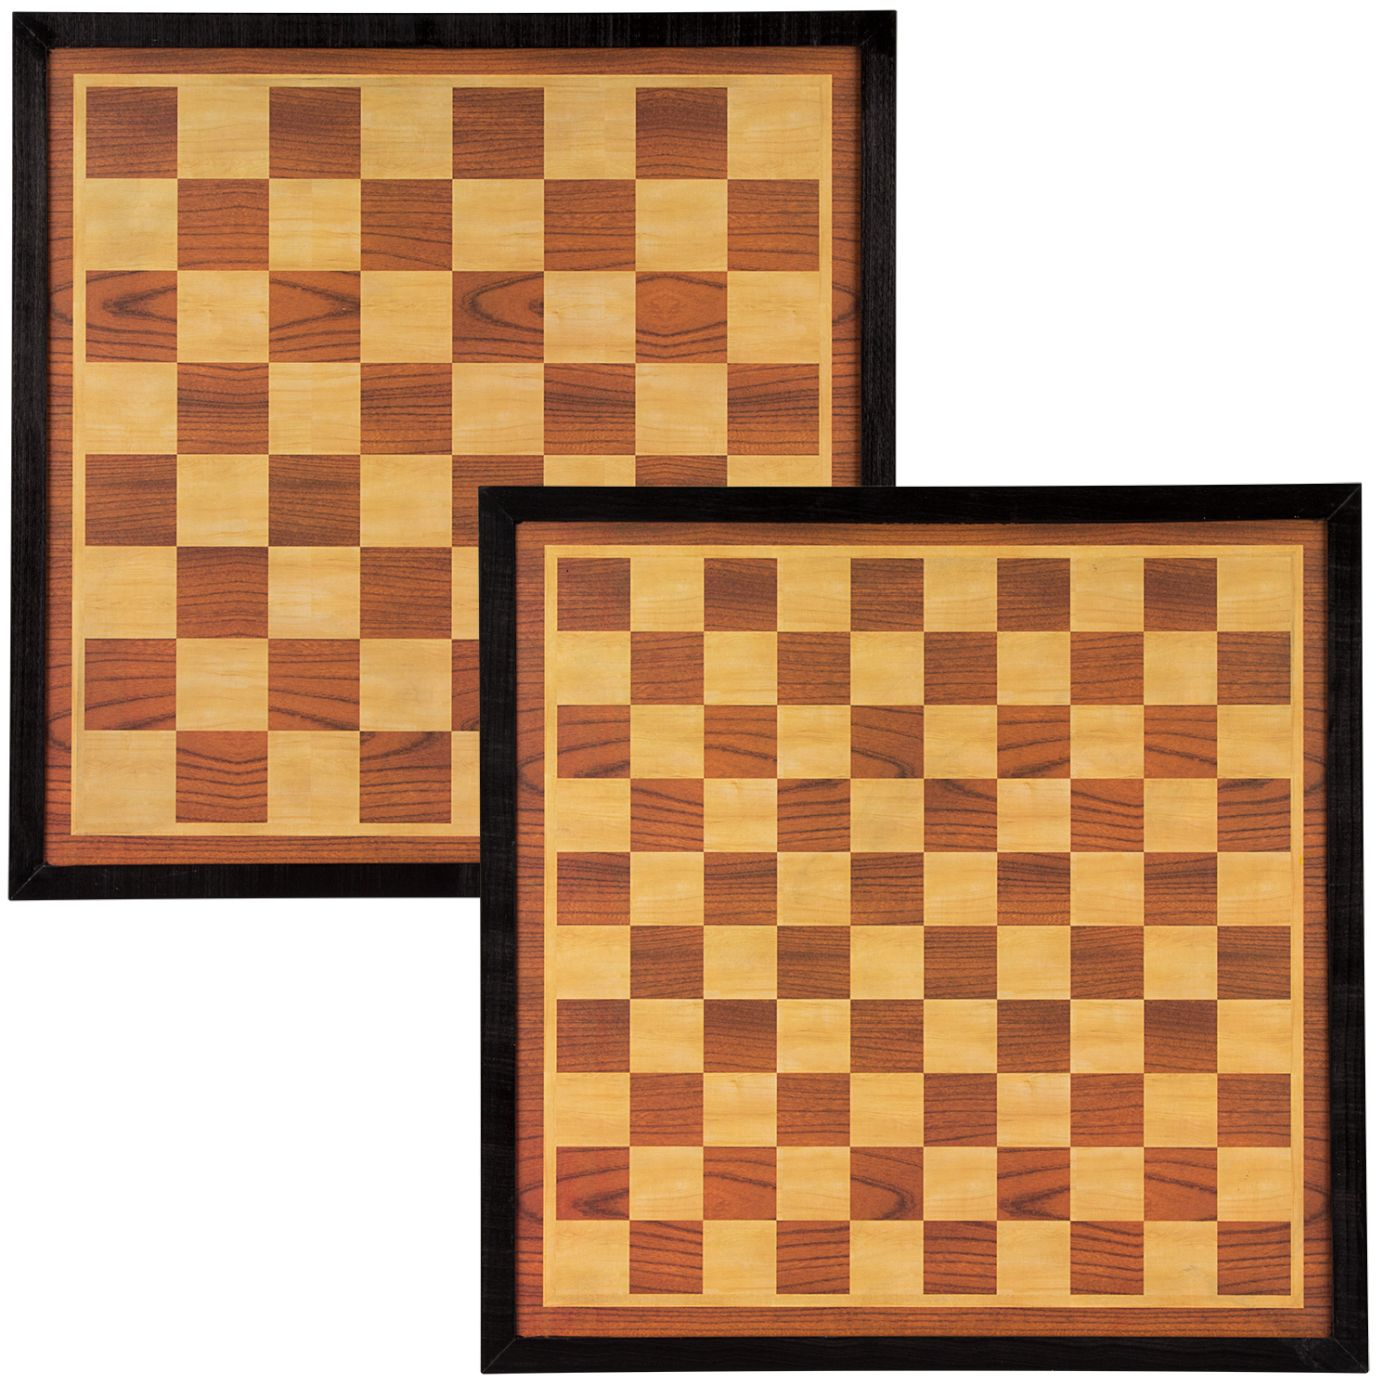 Tabla de sah Abbey® Game  49,5 x 49,5 cm